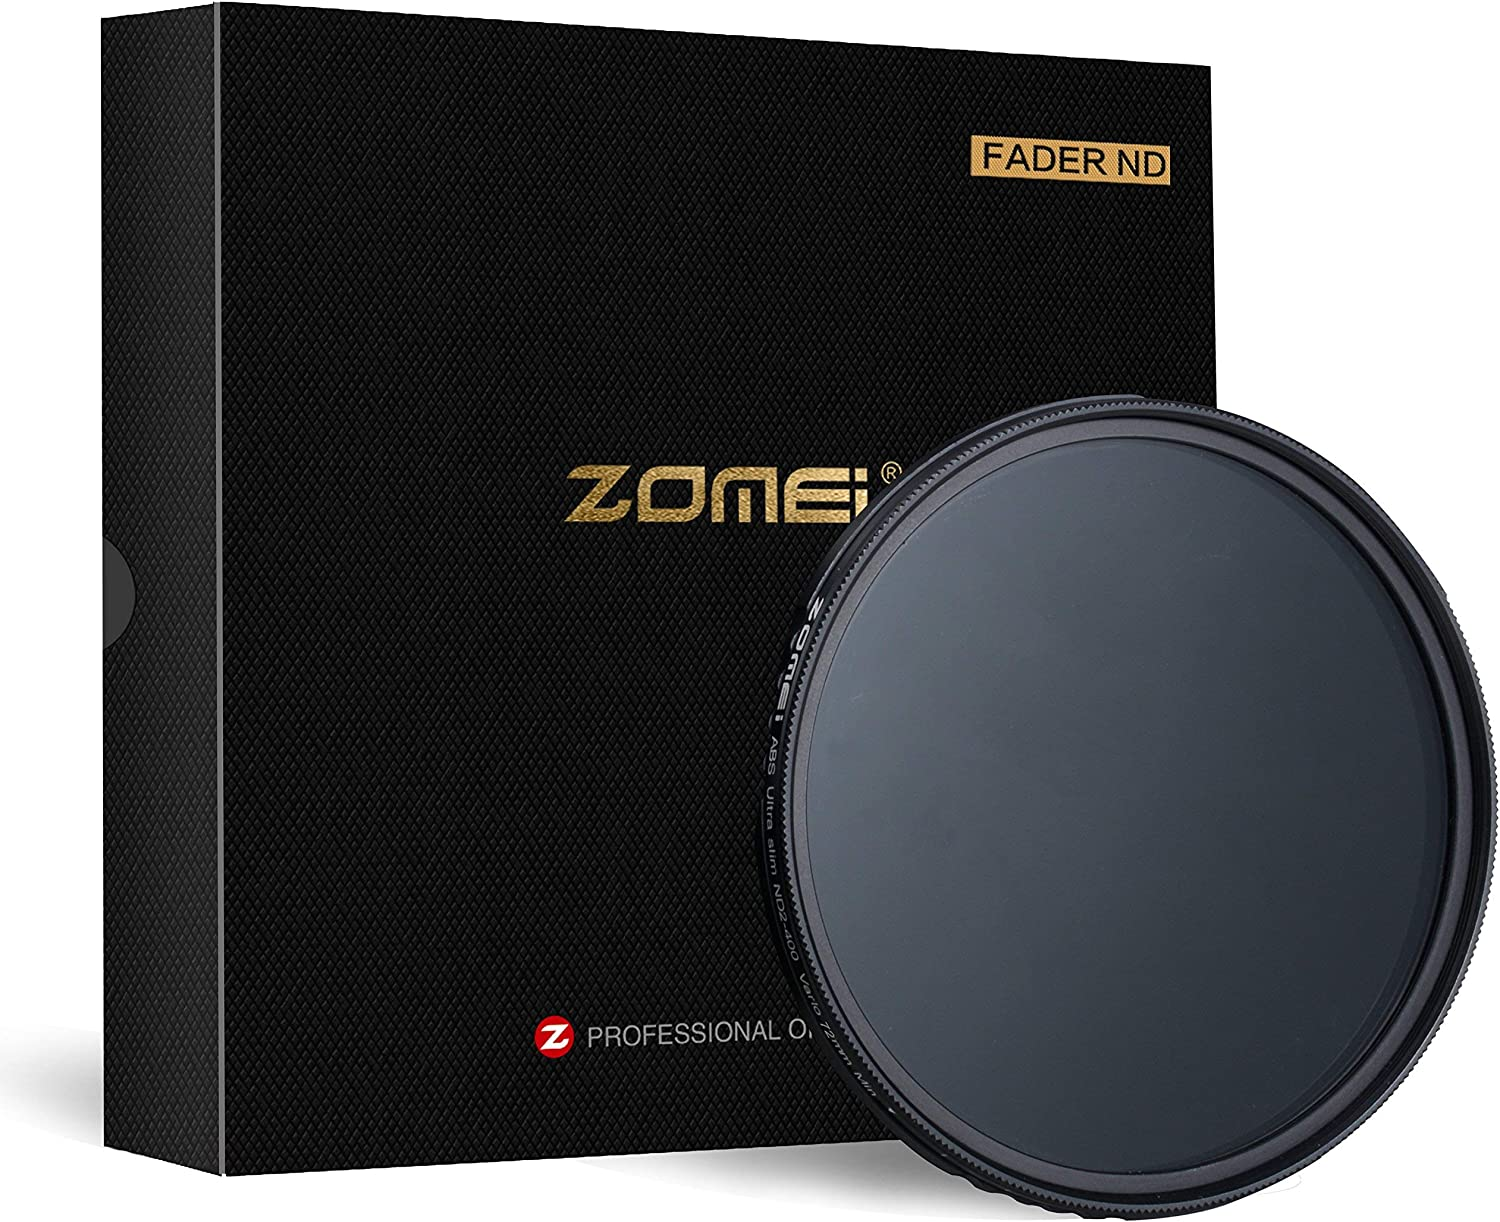 ZoMei 72mm ND Filter Adjustable Variable ND2-400 Fader